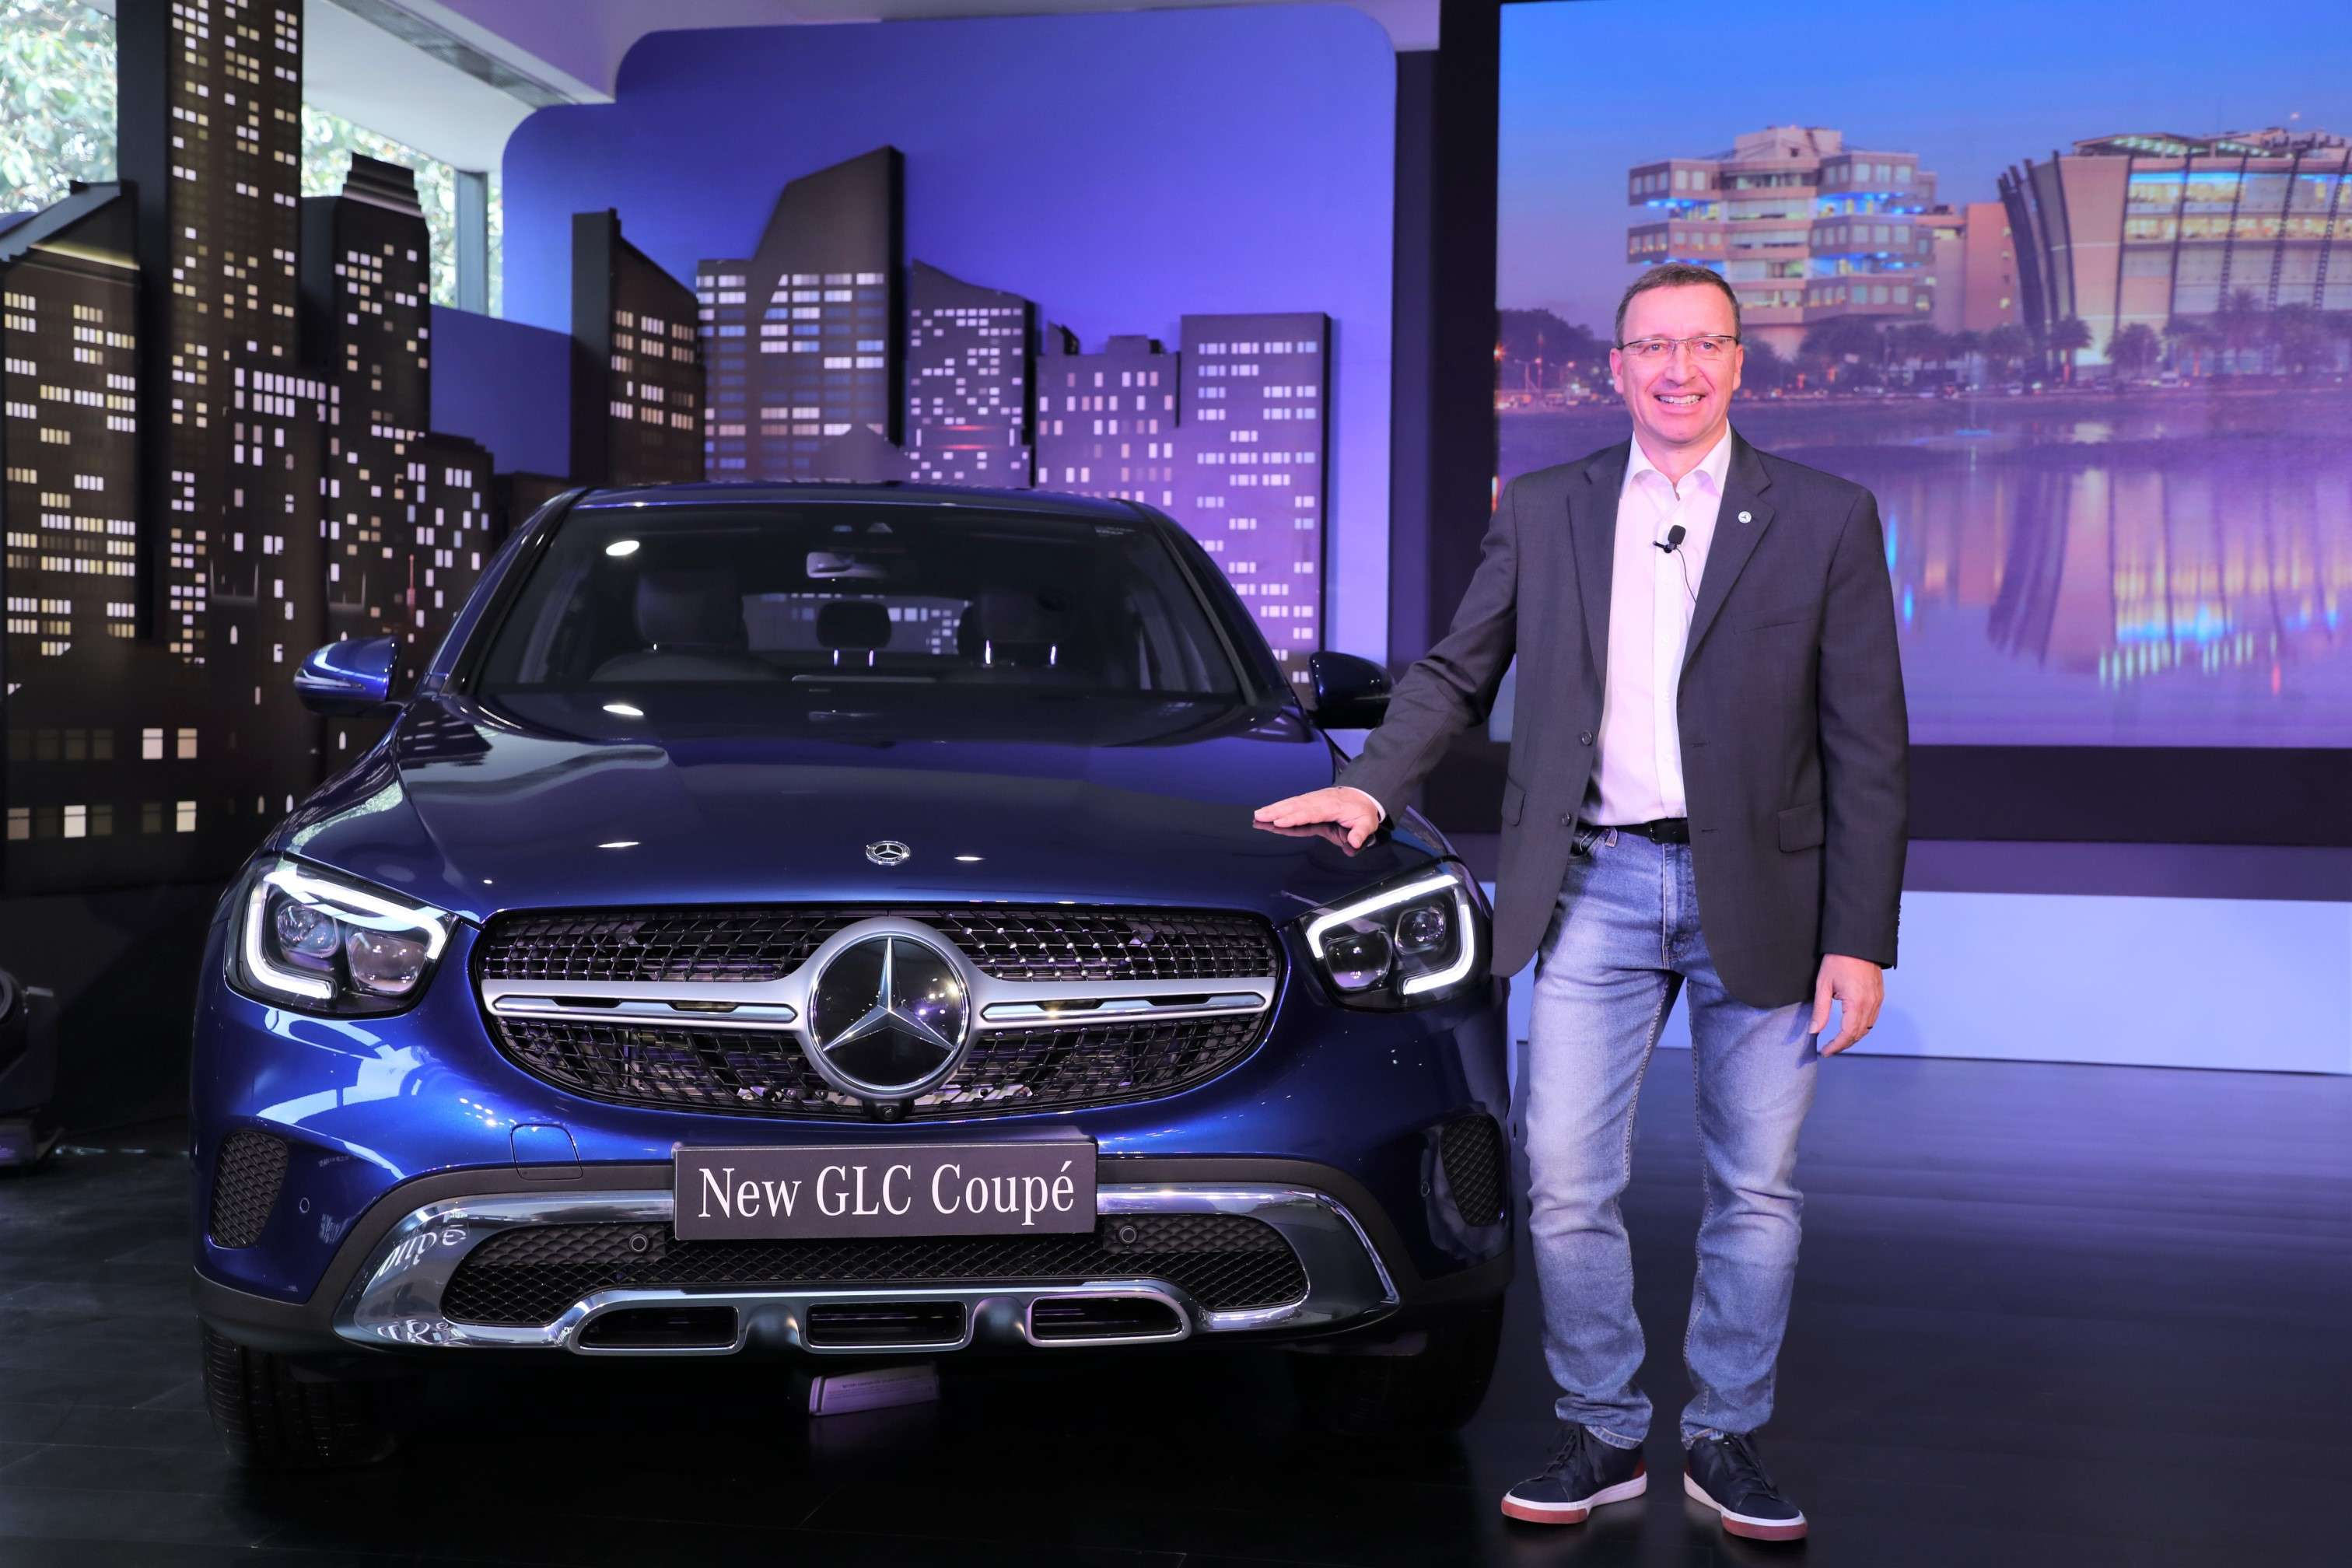 Mercedes Benz India Mercedes Benz Plans To Launch 10 Luxury Cars In India Auto News Et Auto